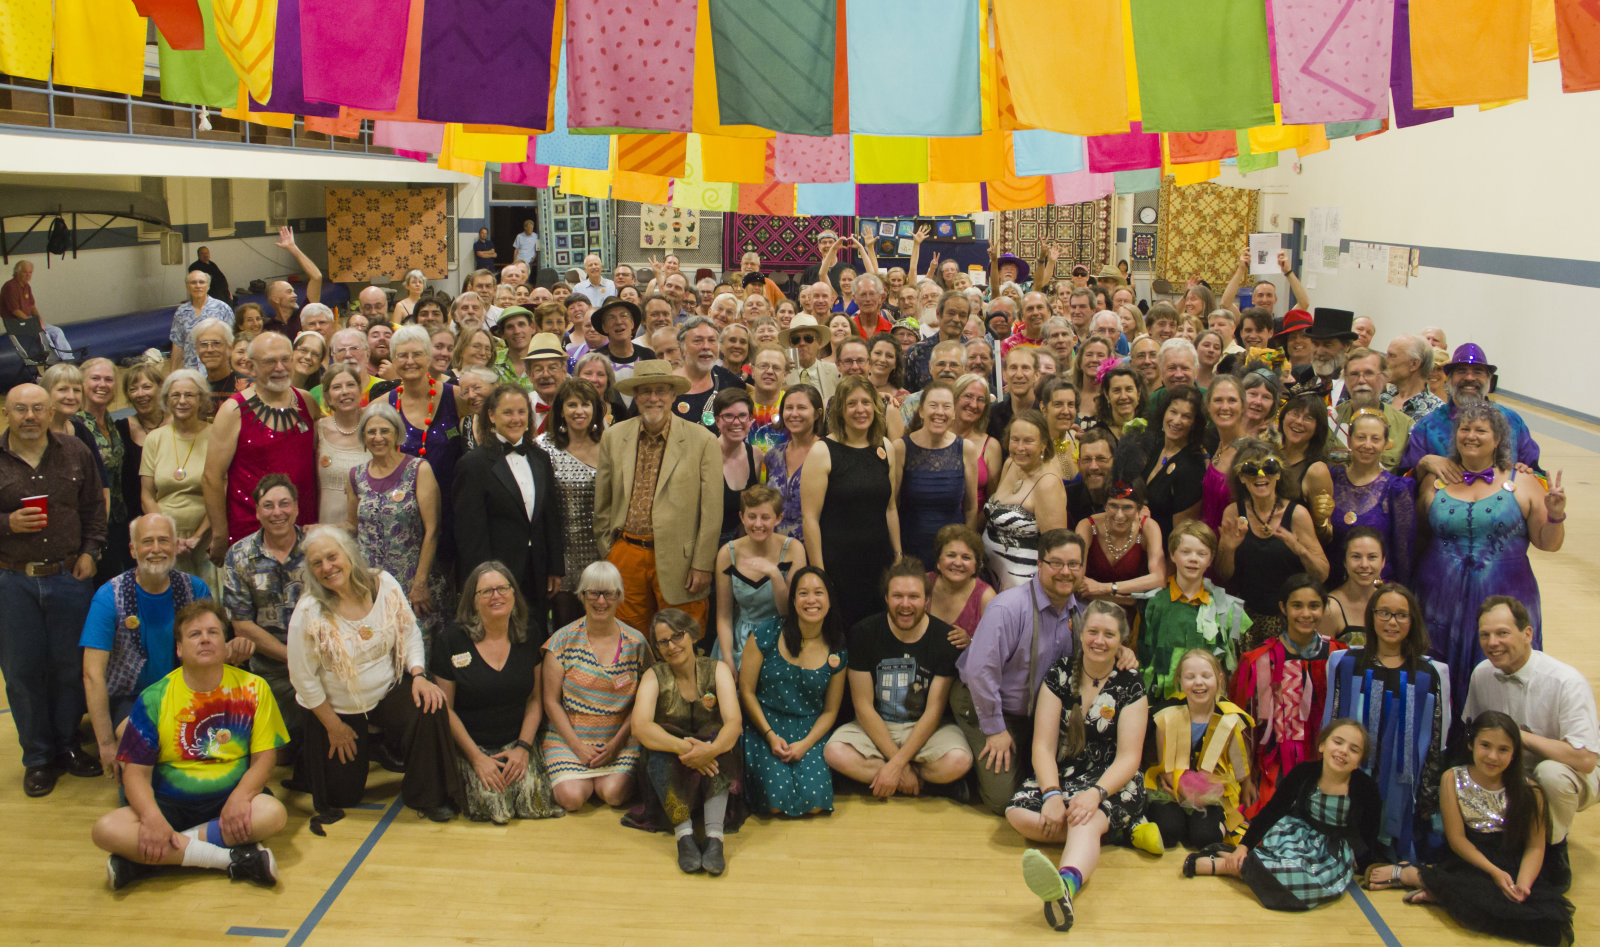 2016 FolkMadness Group Photo